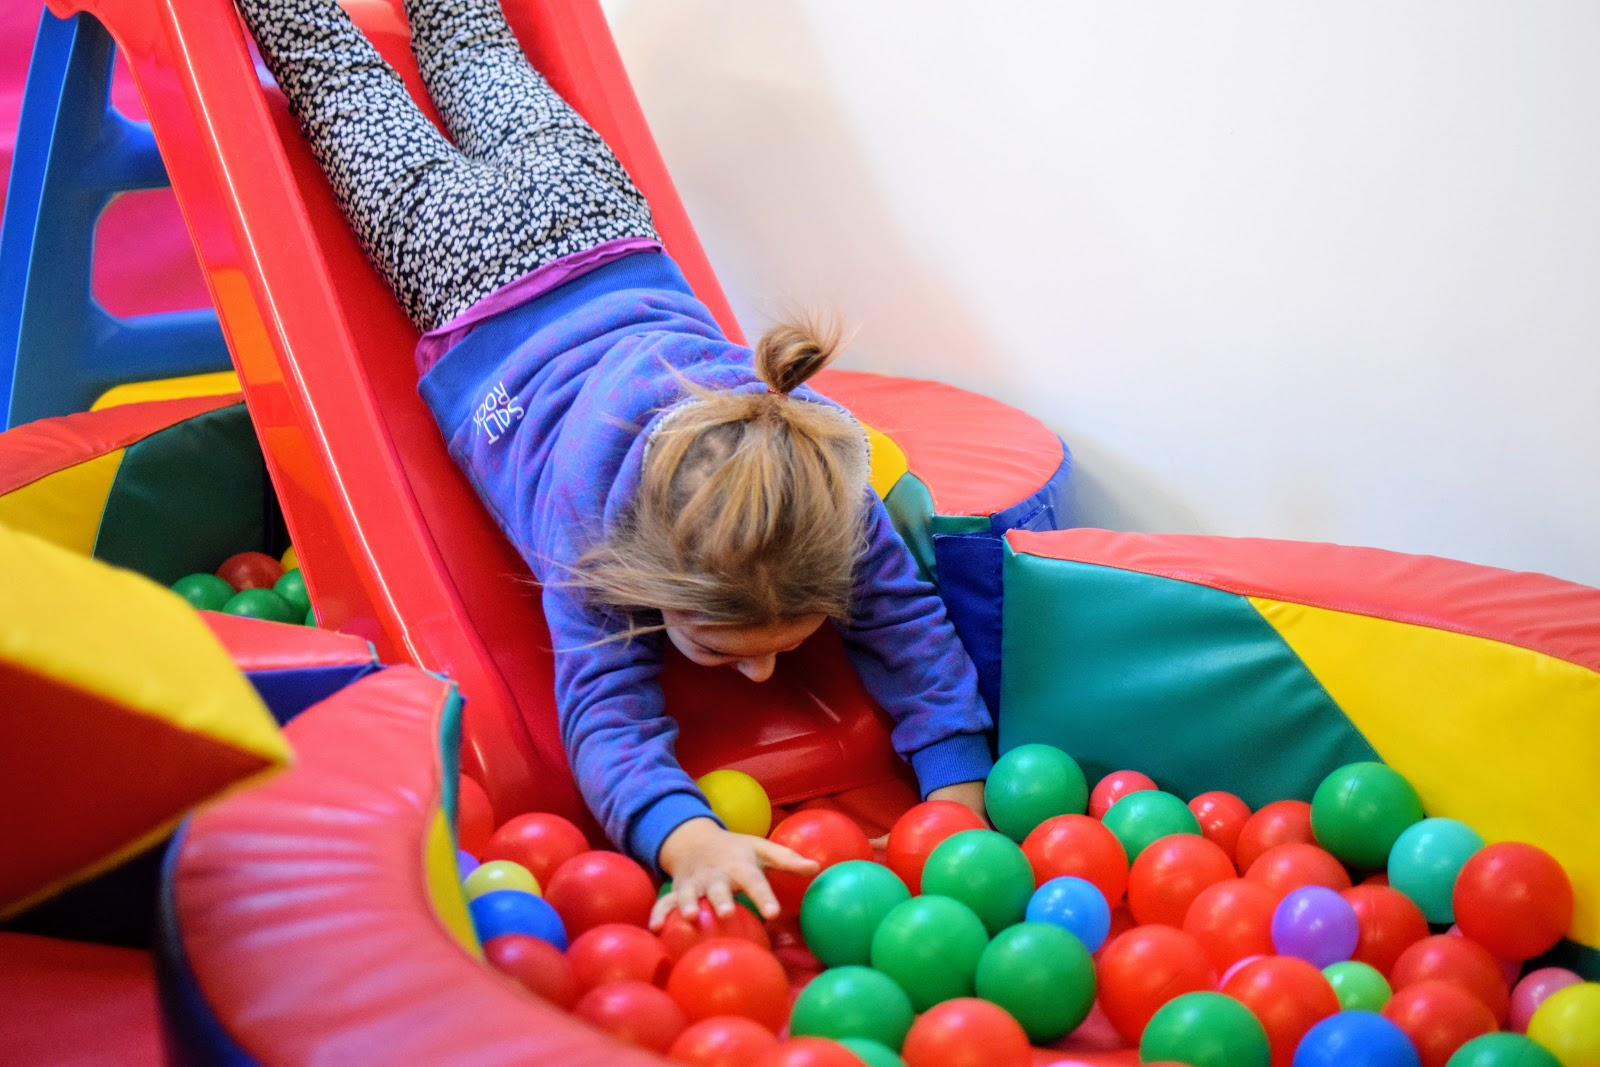 , Clydey Cottages, Pembrokeshire, Wales:  A Fun and Relaxing Holiday with Kids